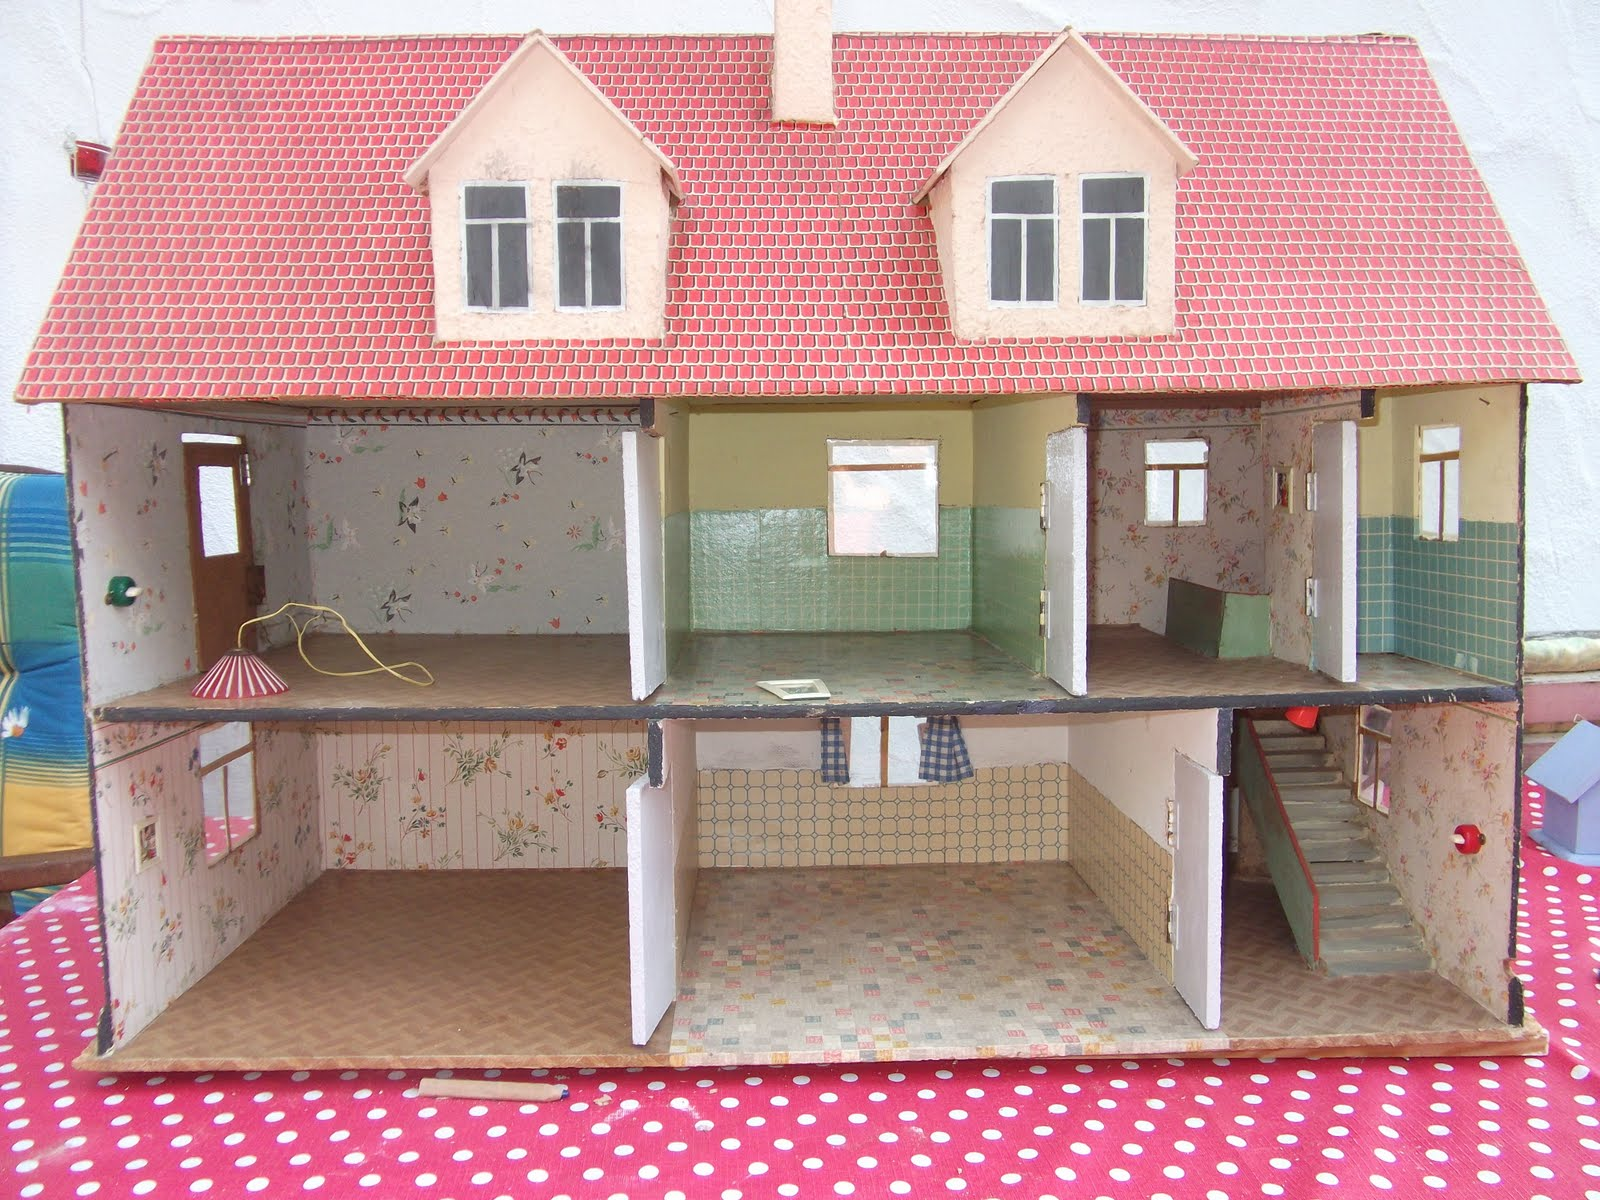 lillis puppenstube selbstgebautes puppenhaus aus den 50er jahren selfmade 50s dollhouse. Black Bedroom Furniture Sets. Home Design Ideas